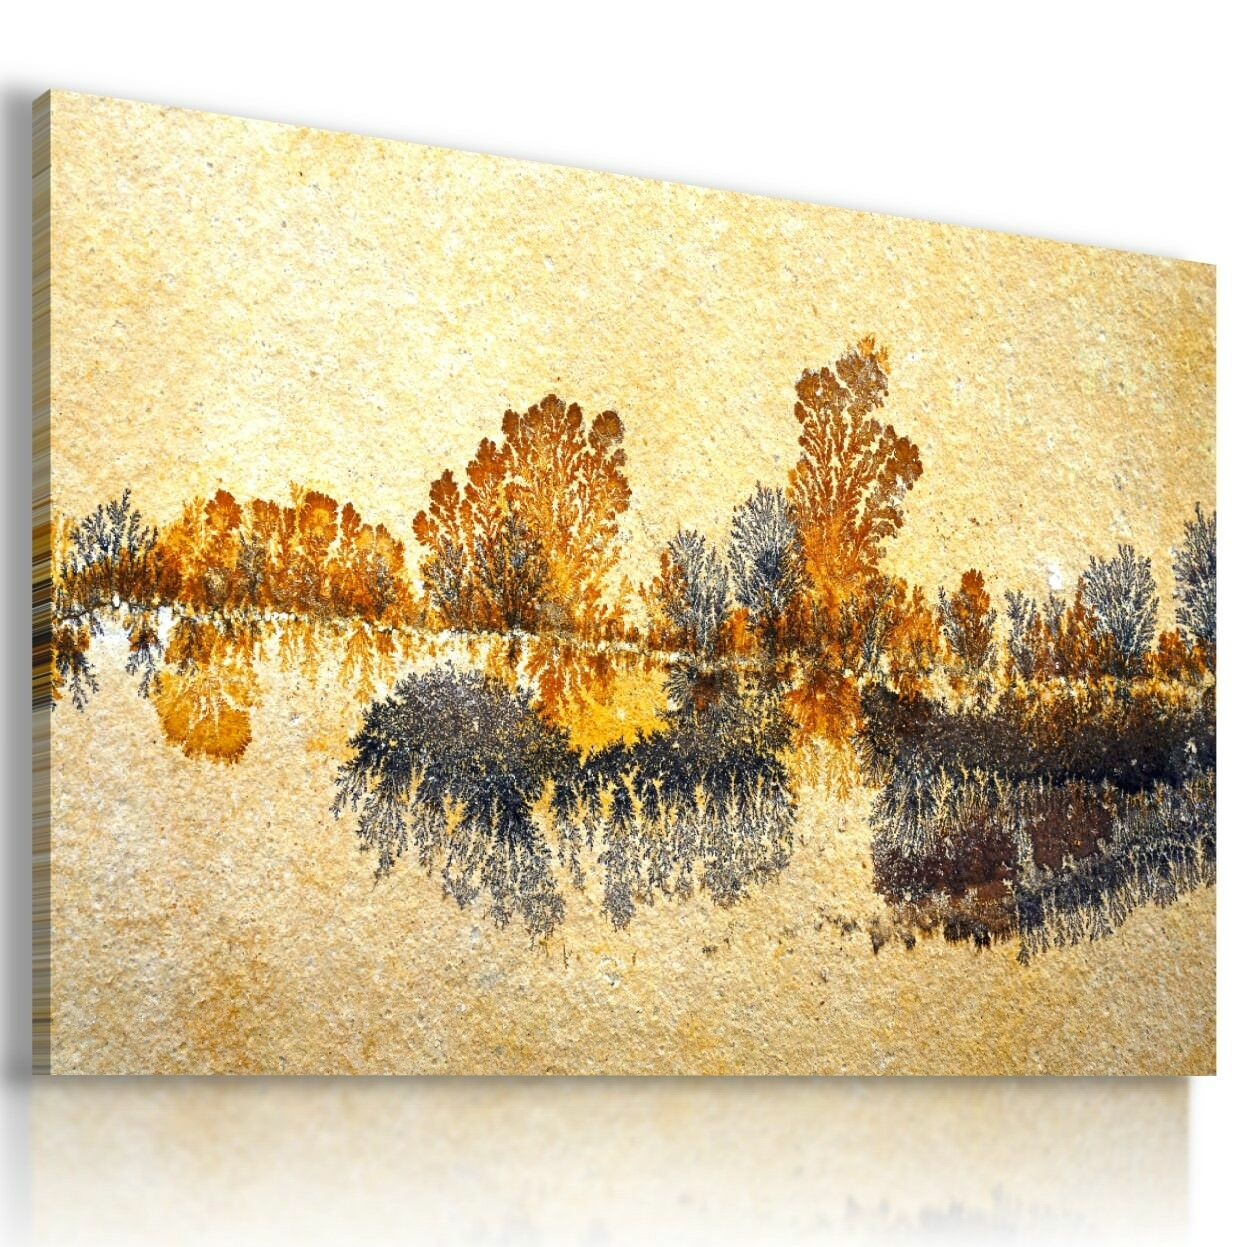 FANTASY LIQUEFIED STONE Canvas Wall Art Picture Large SIZES L532 X ...